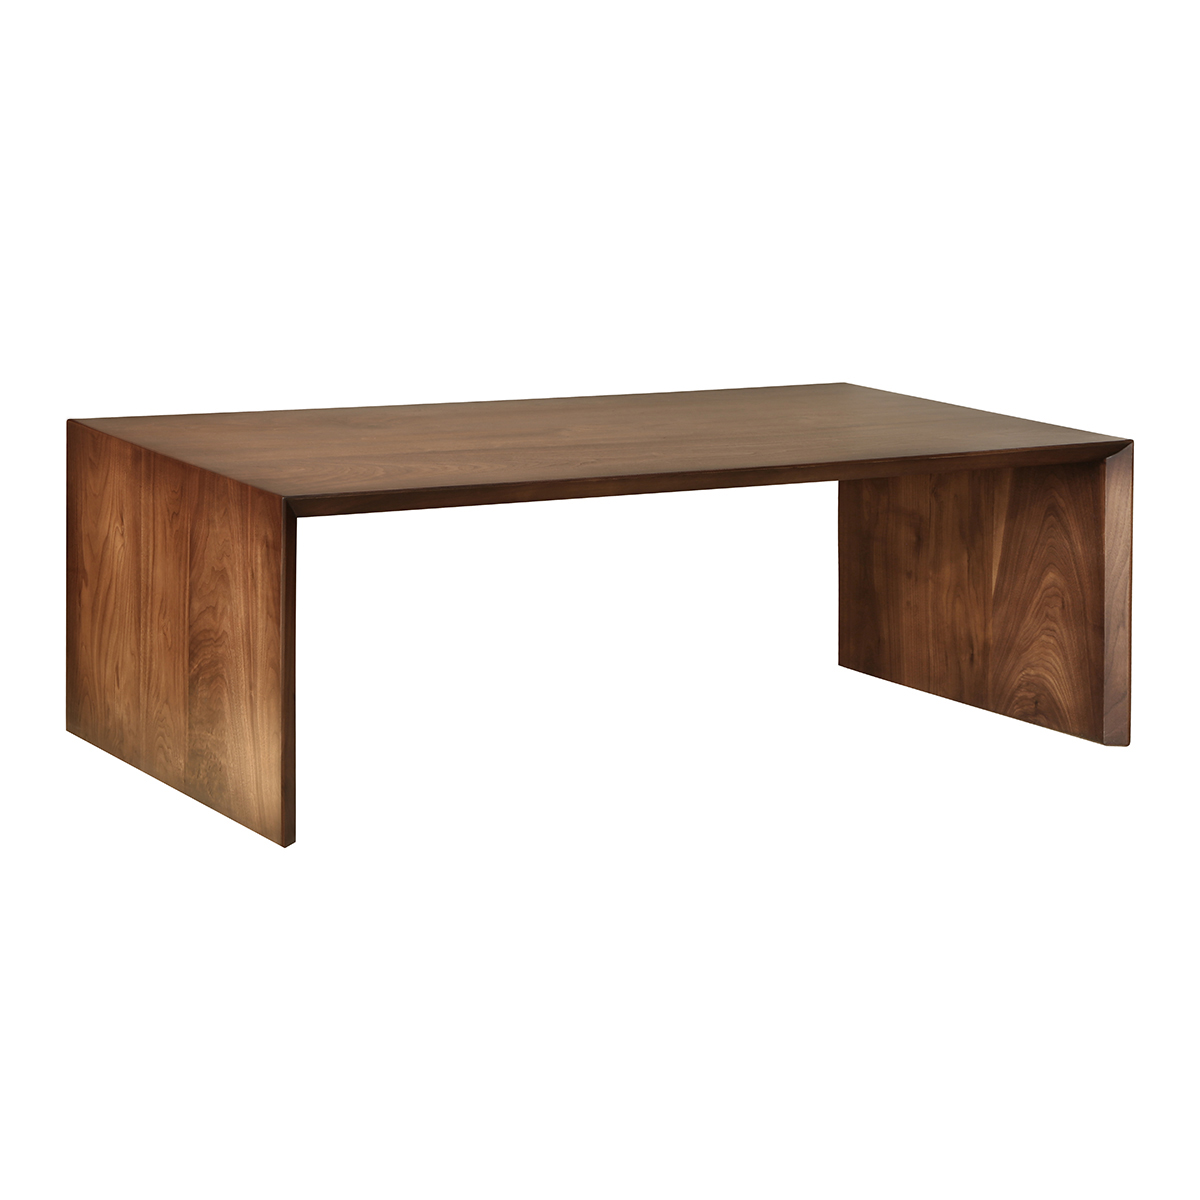 Vero Coffee Table AngleX